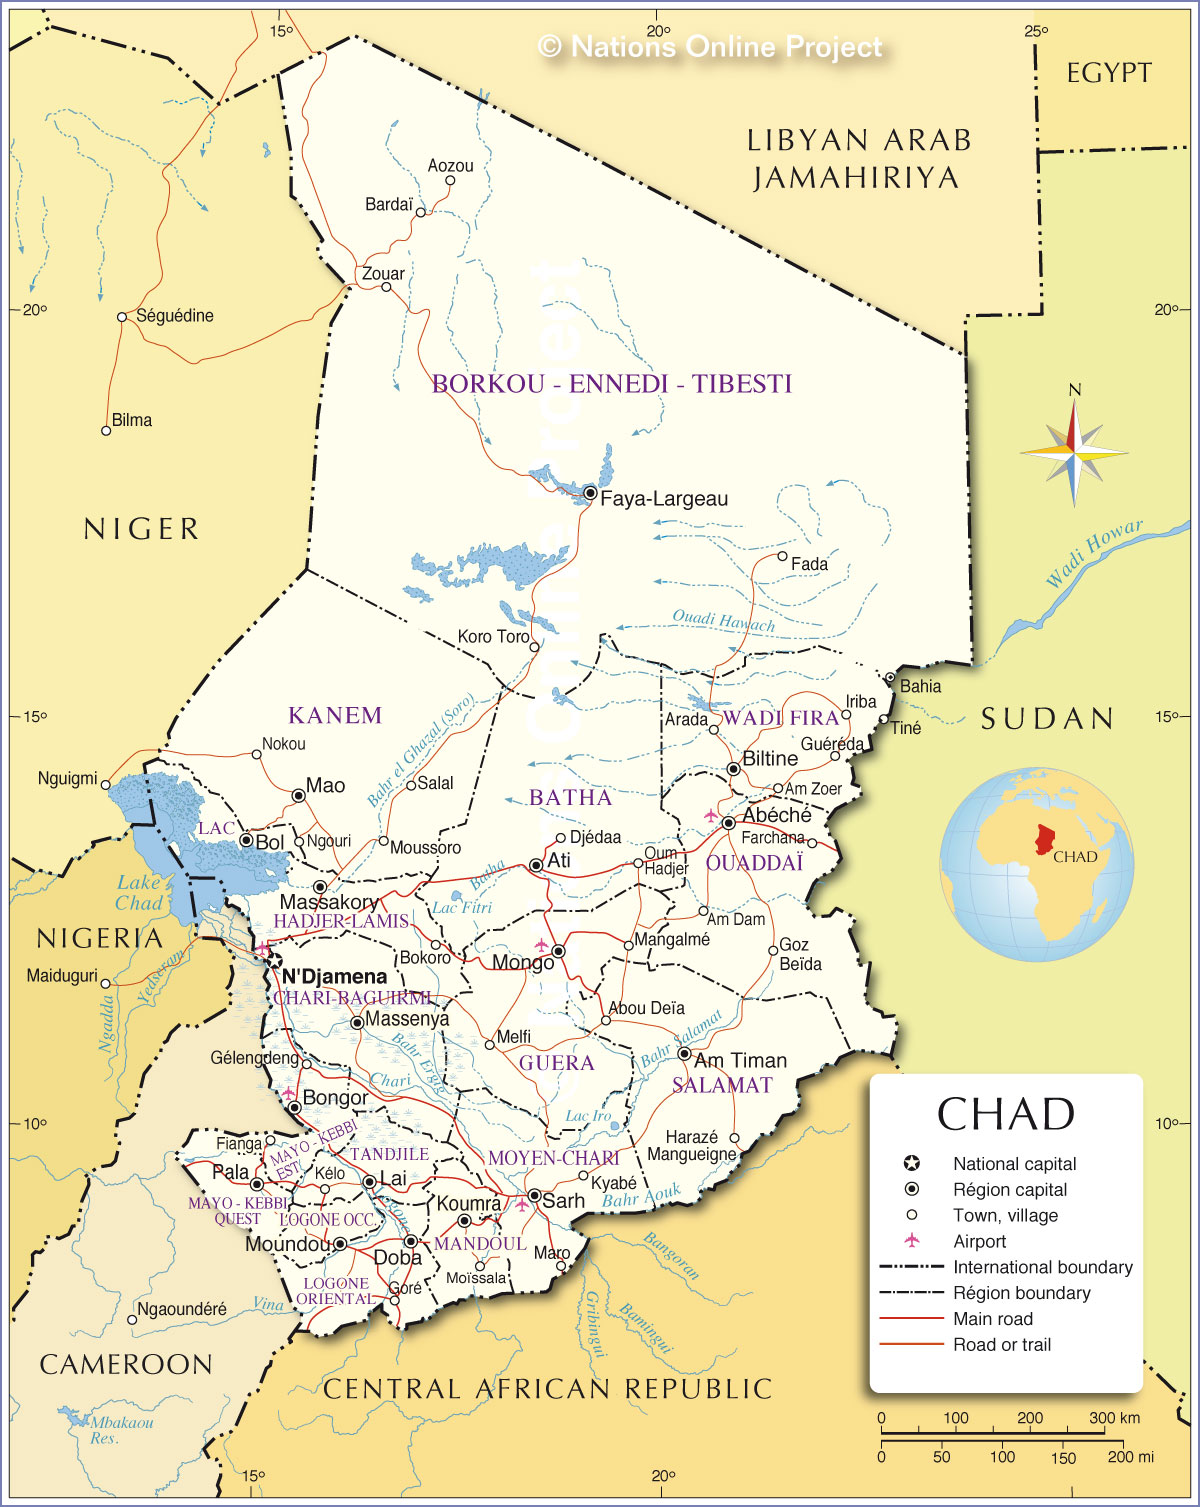 Political Map Of Chad Nations Online Project - Chad map